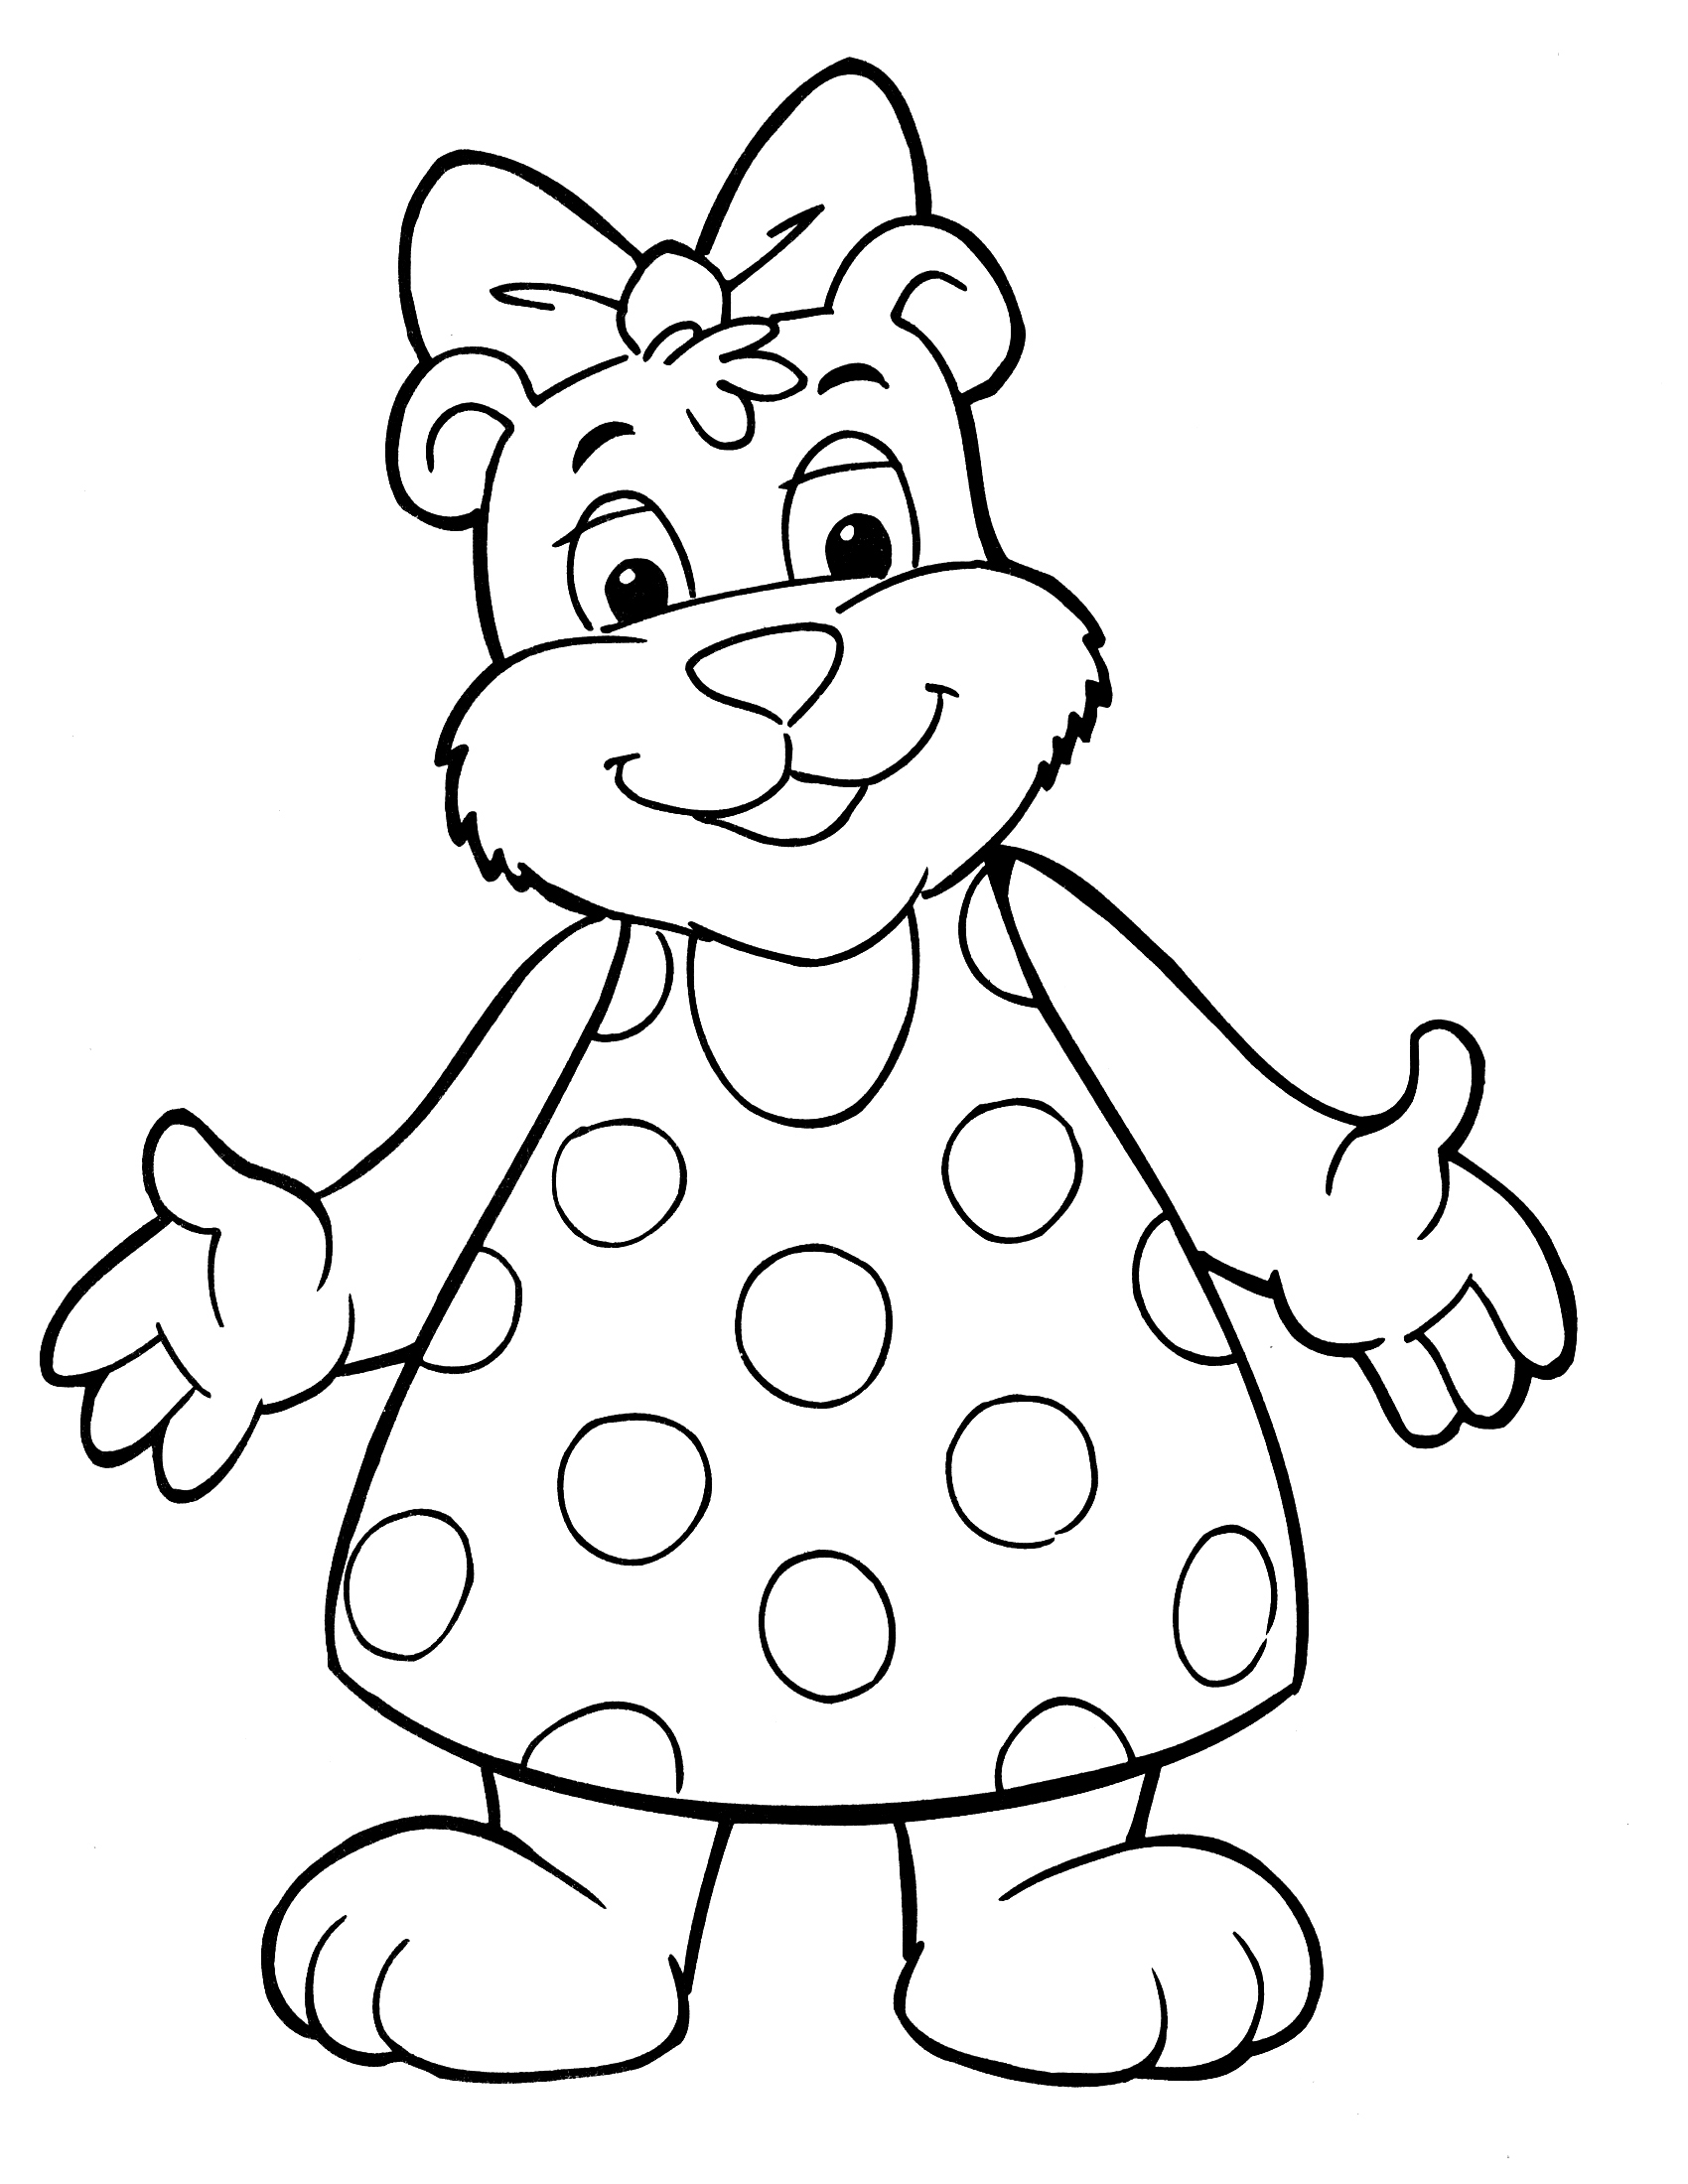 crayola coloring pages - photo#33